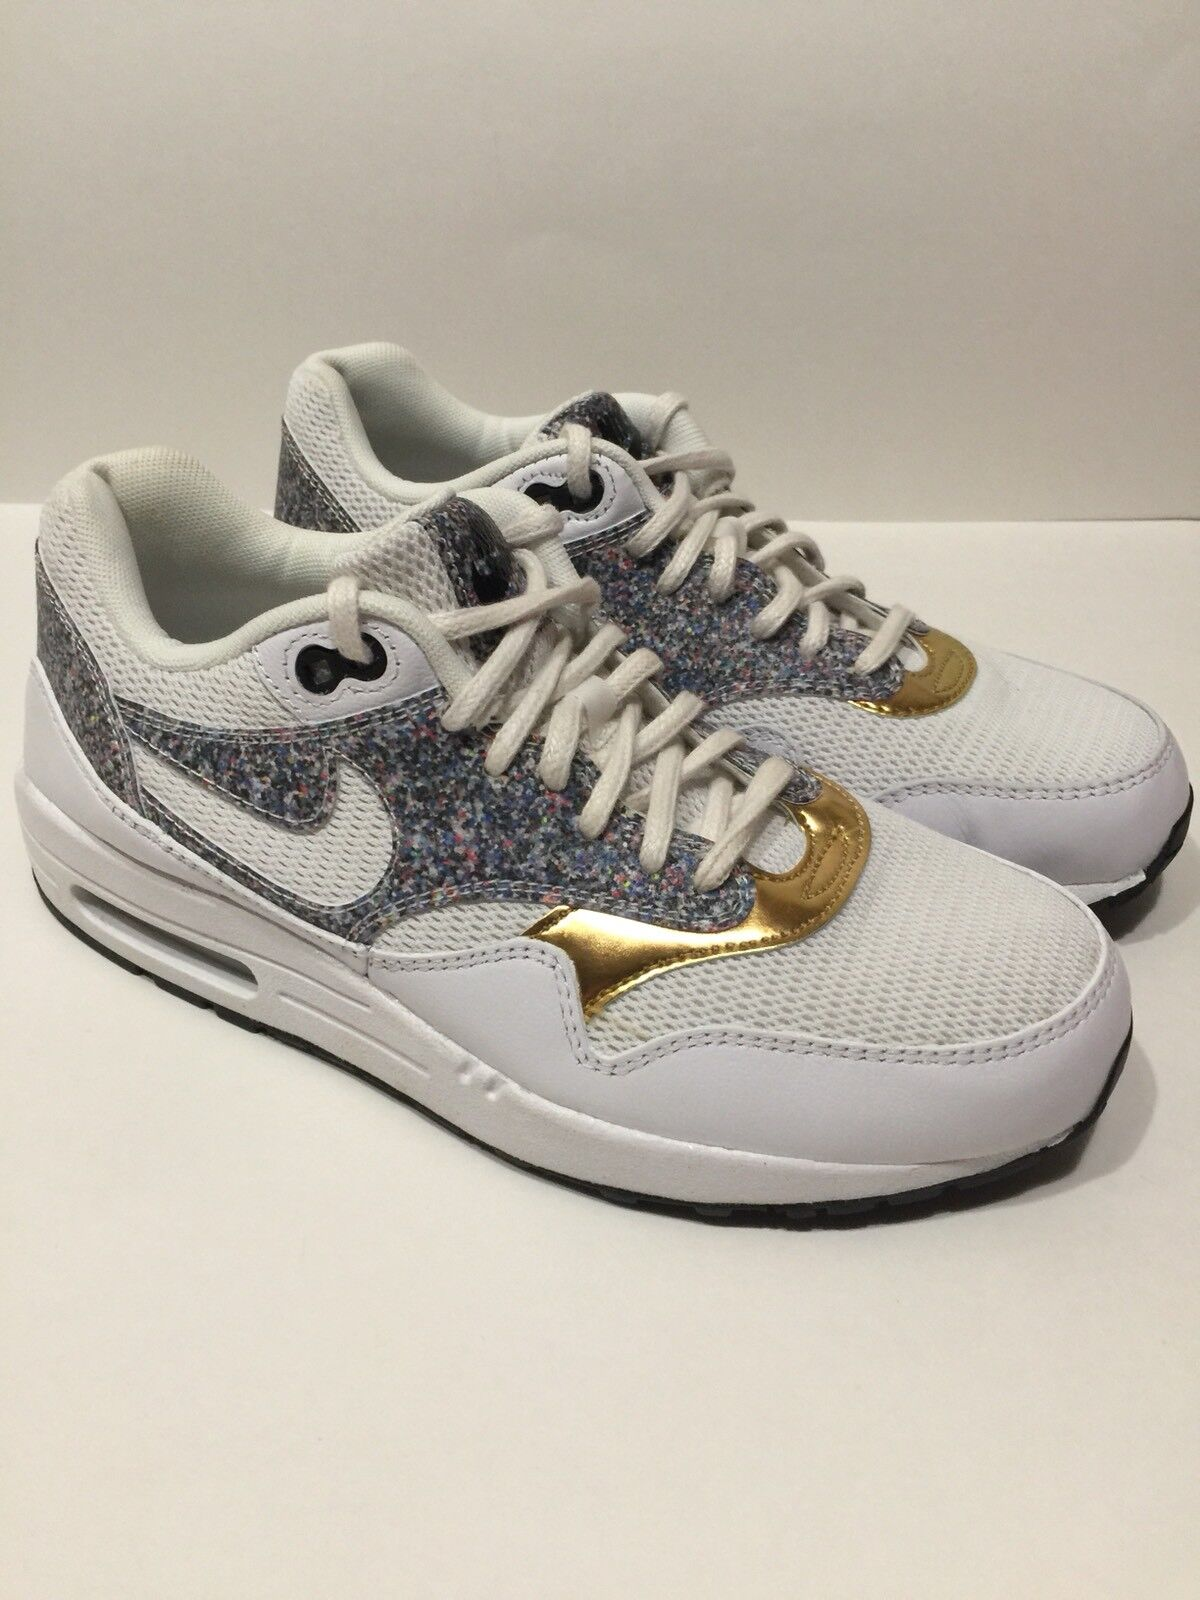 Women's Sz 7.5 Nike Air Max 1 SE White Black gold shoes Trainers 881101-100